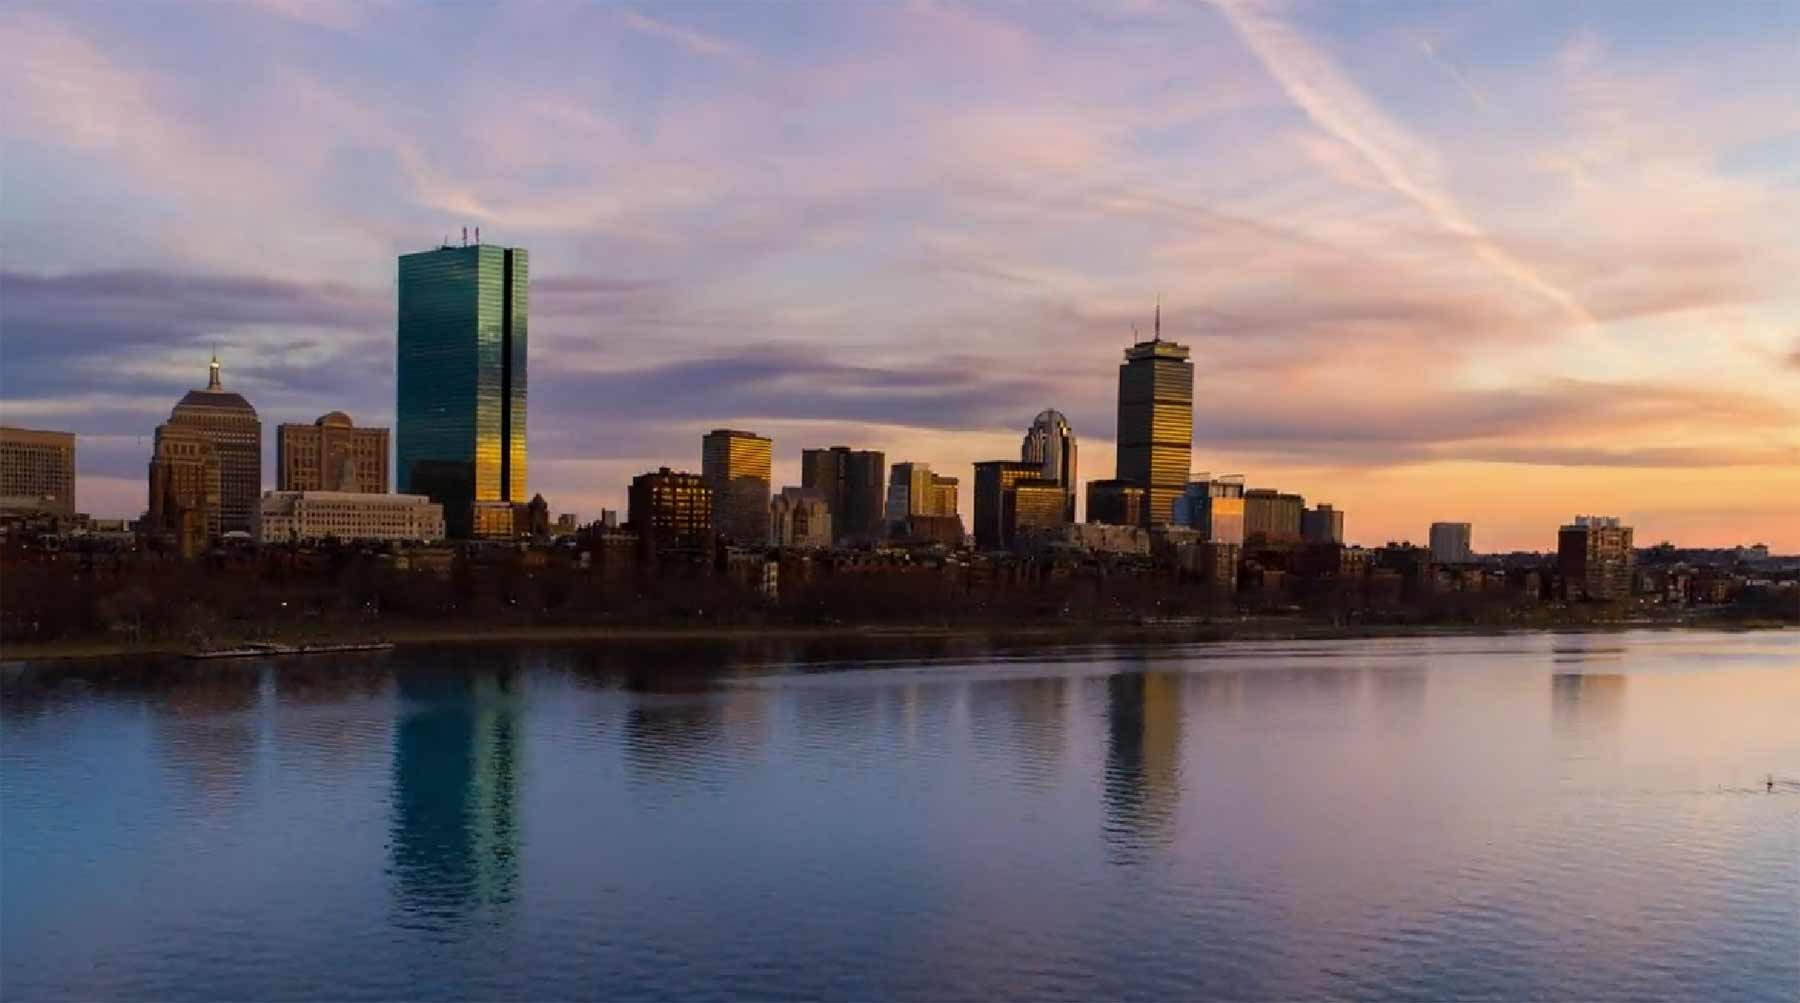 Timelapse: I Love You Boston